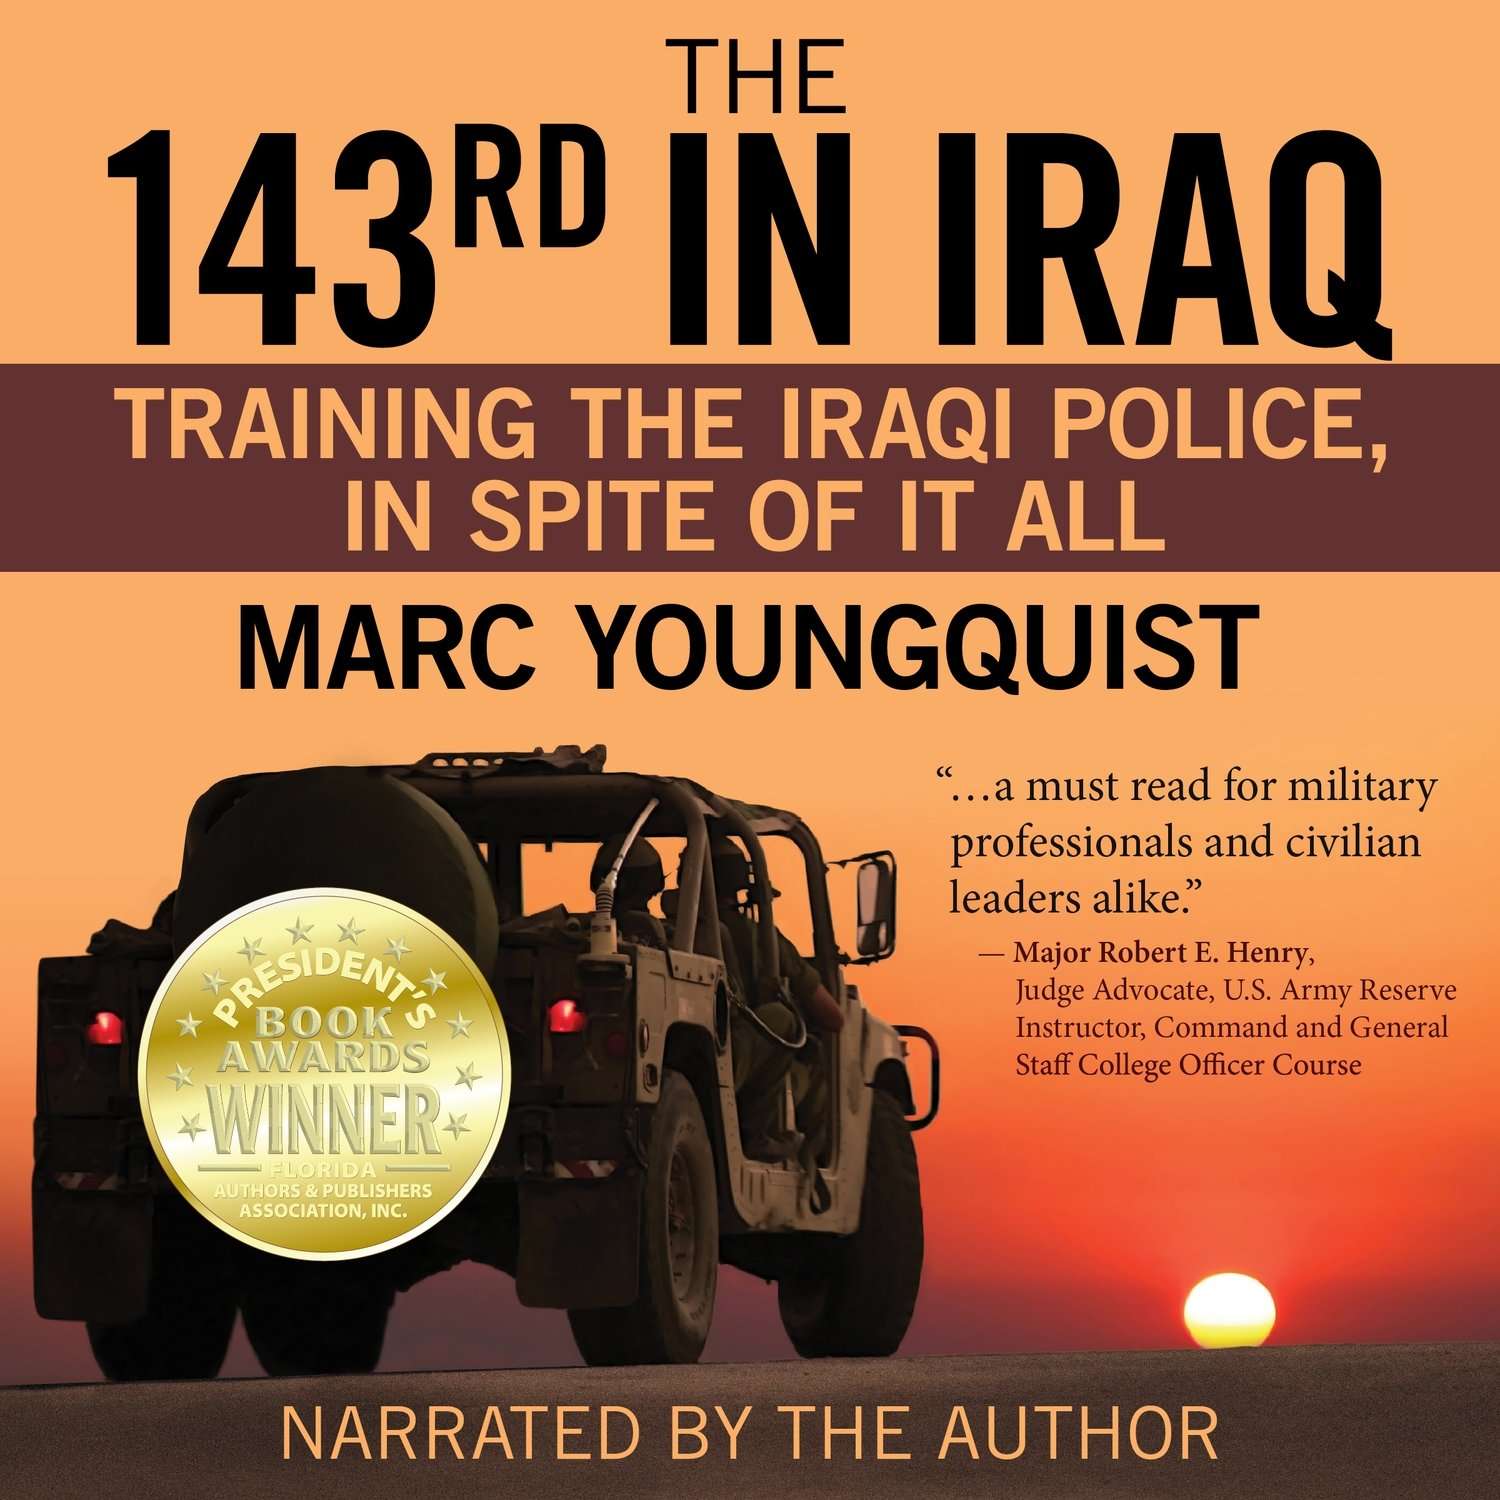 The 143rd in Iraq: Training the Iraqi Police, In Spite of It All (audiobook)